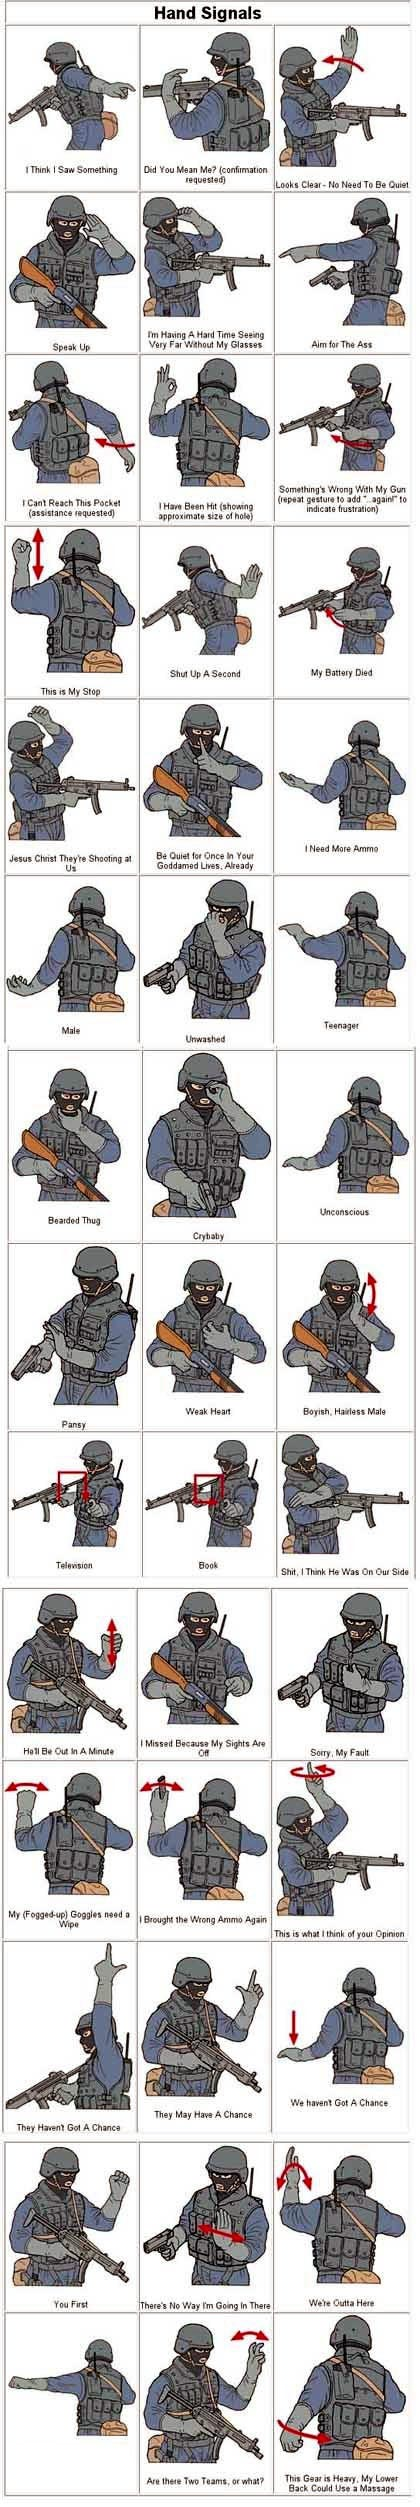 Hand Gesture clipart motorcycle KawiForums Universal